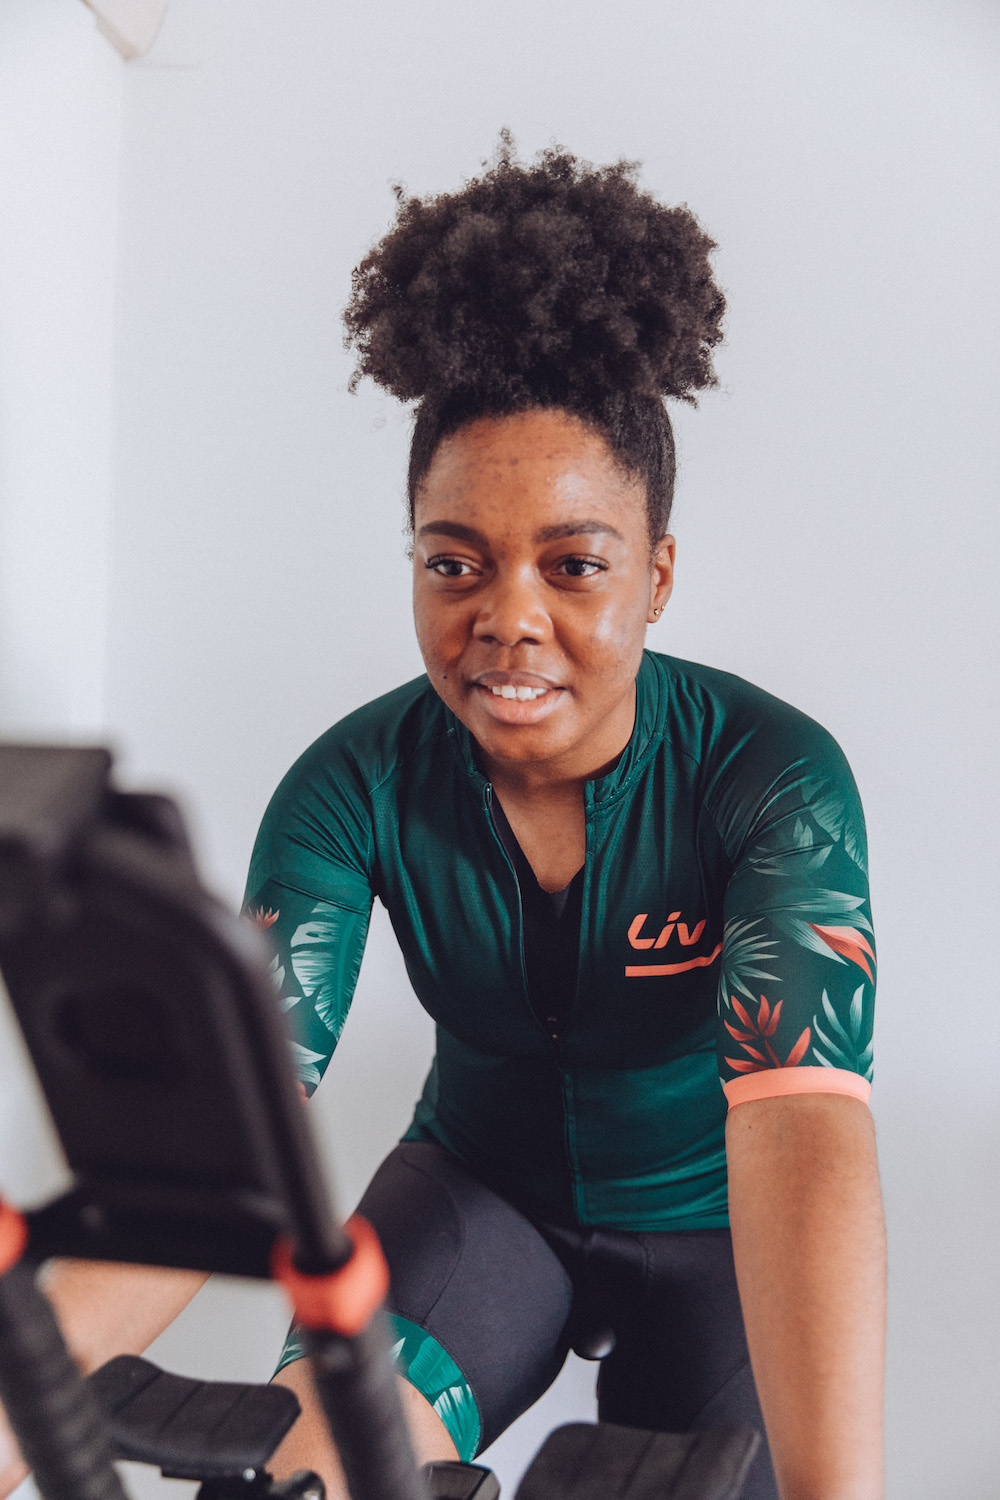 Elle on Wattbike Atom NG training with Wahoo TICKR X heart rate monitor